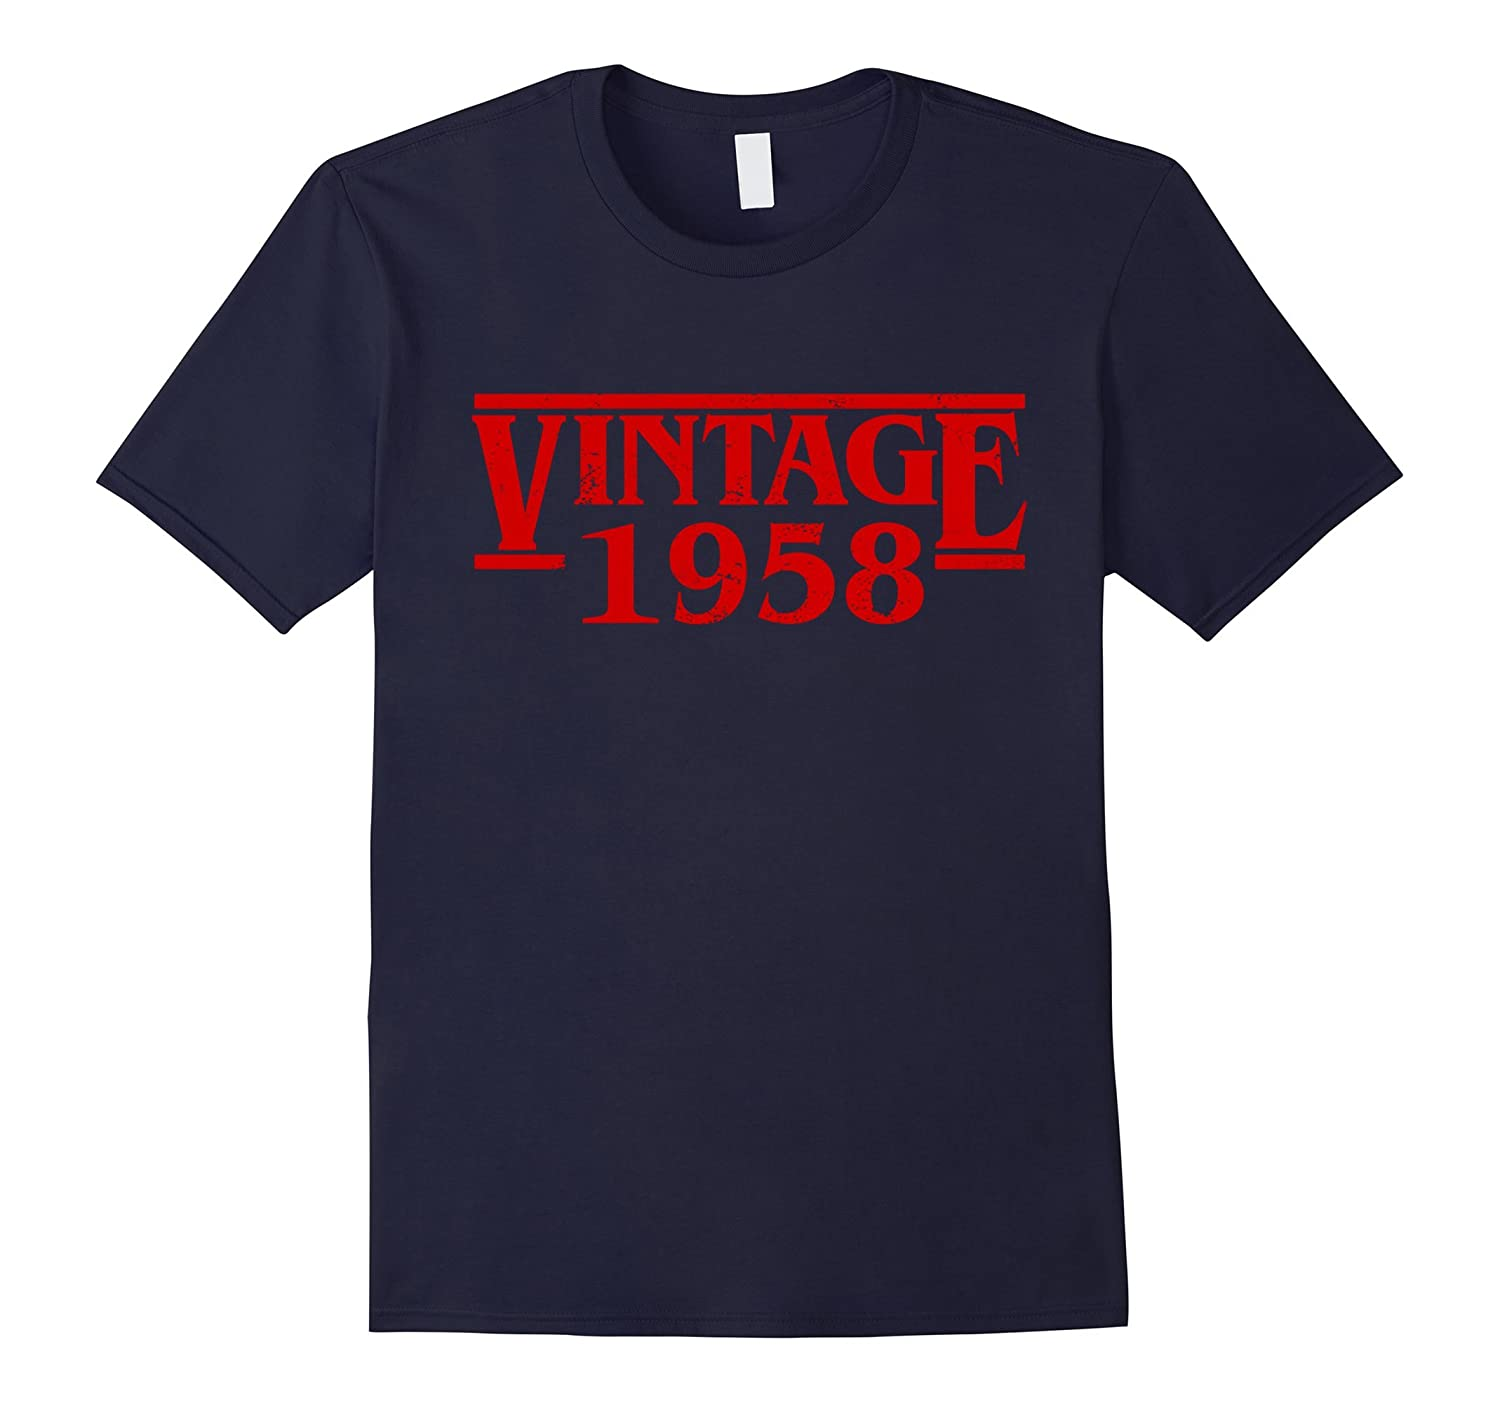 Vintage 1958-59th Birthday Funny T Shirt Gift for Christmas-ah my shirt one gift